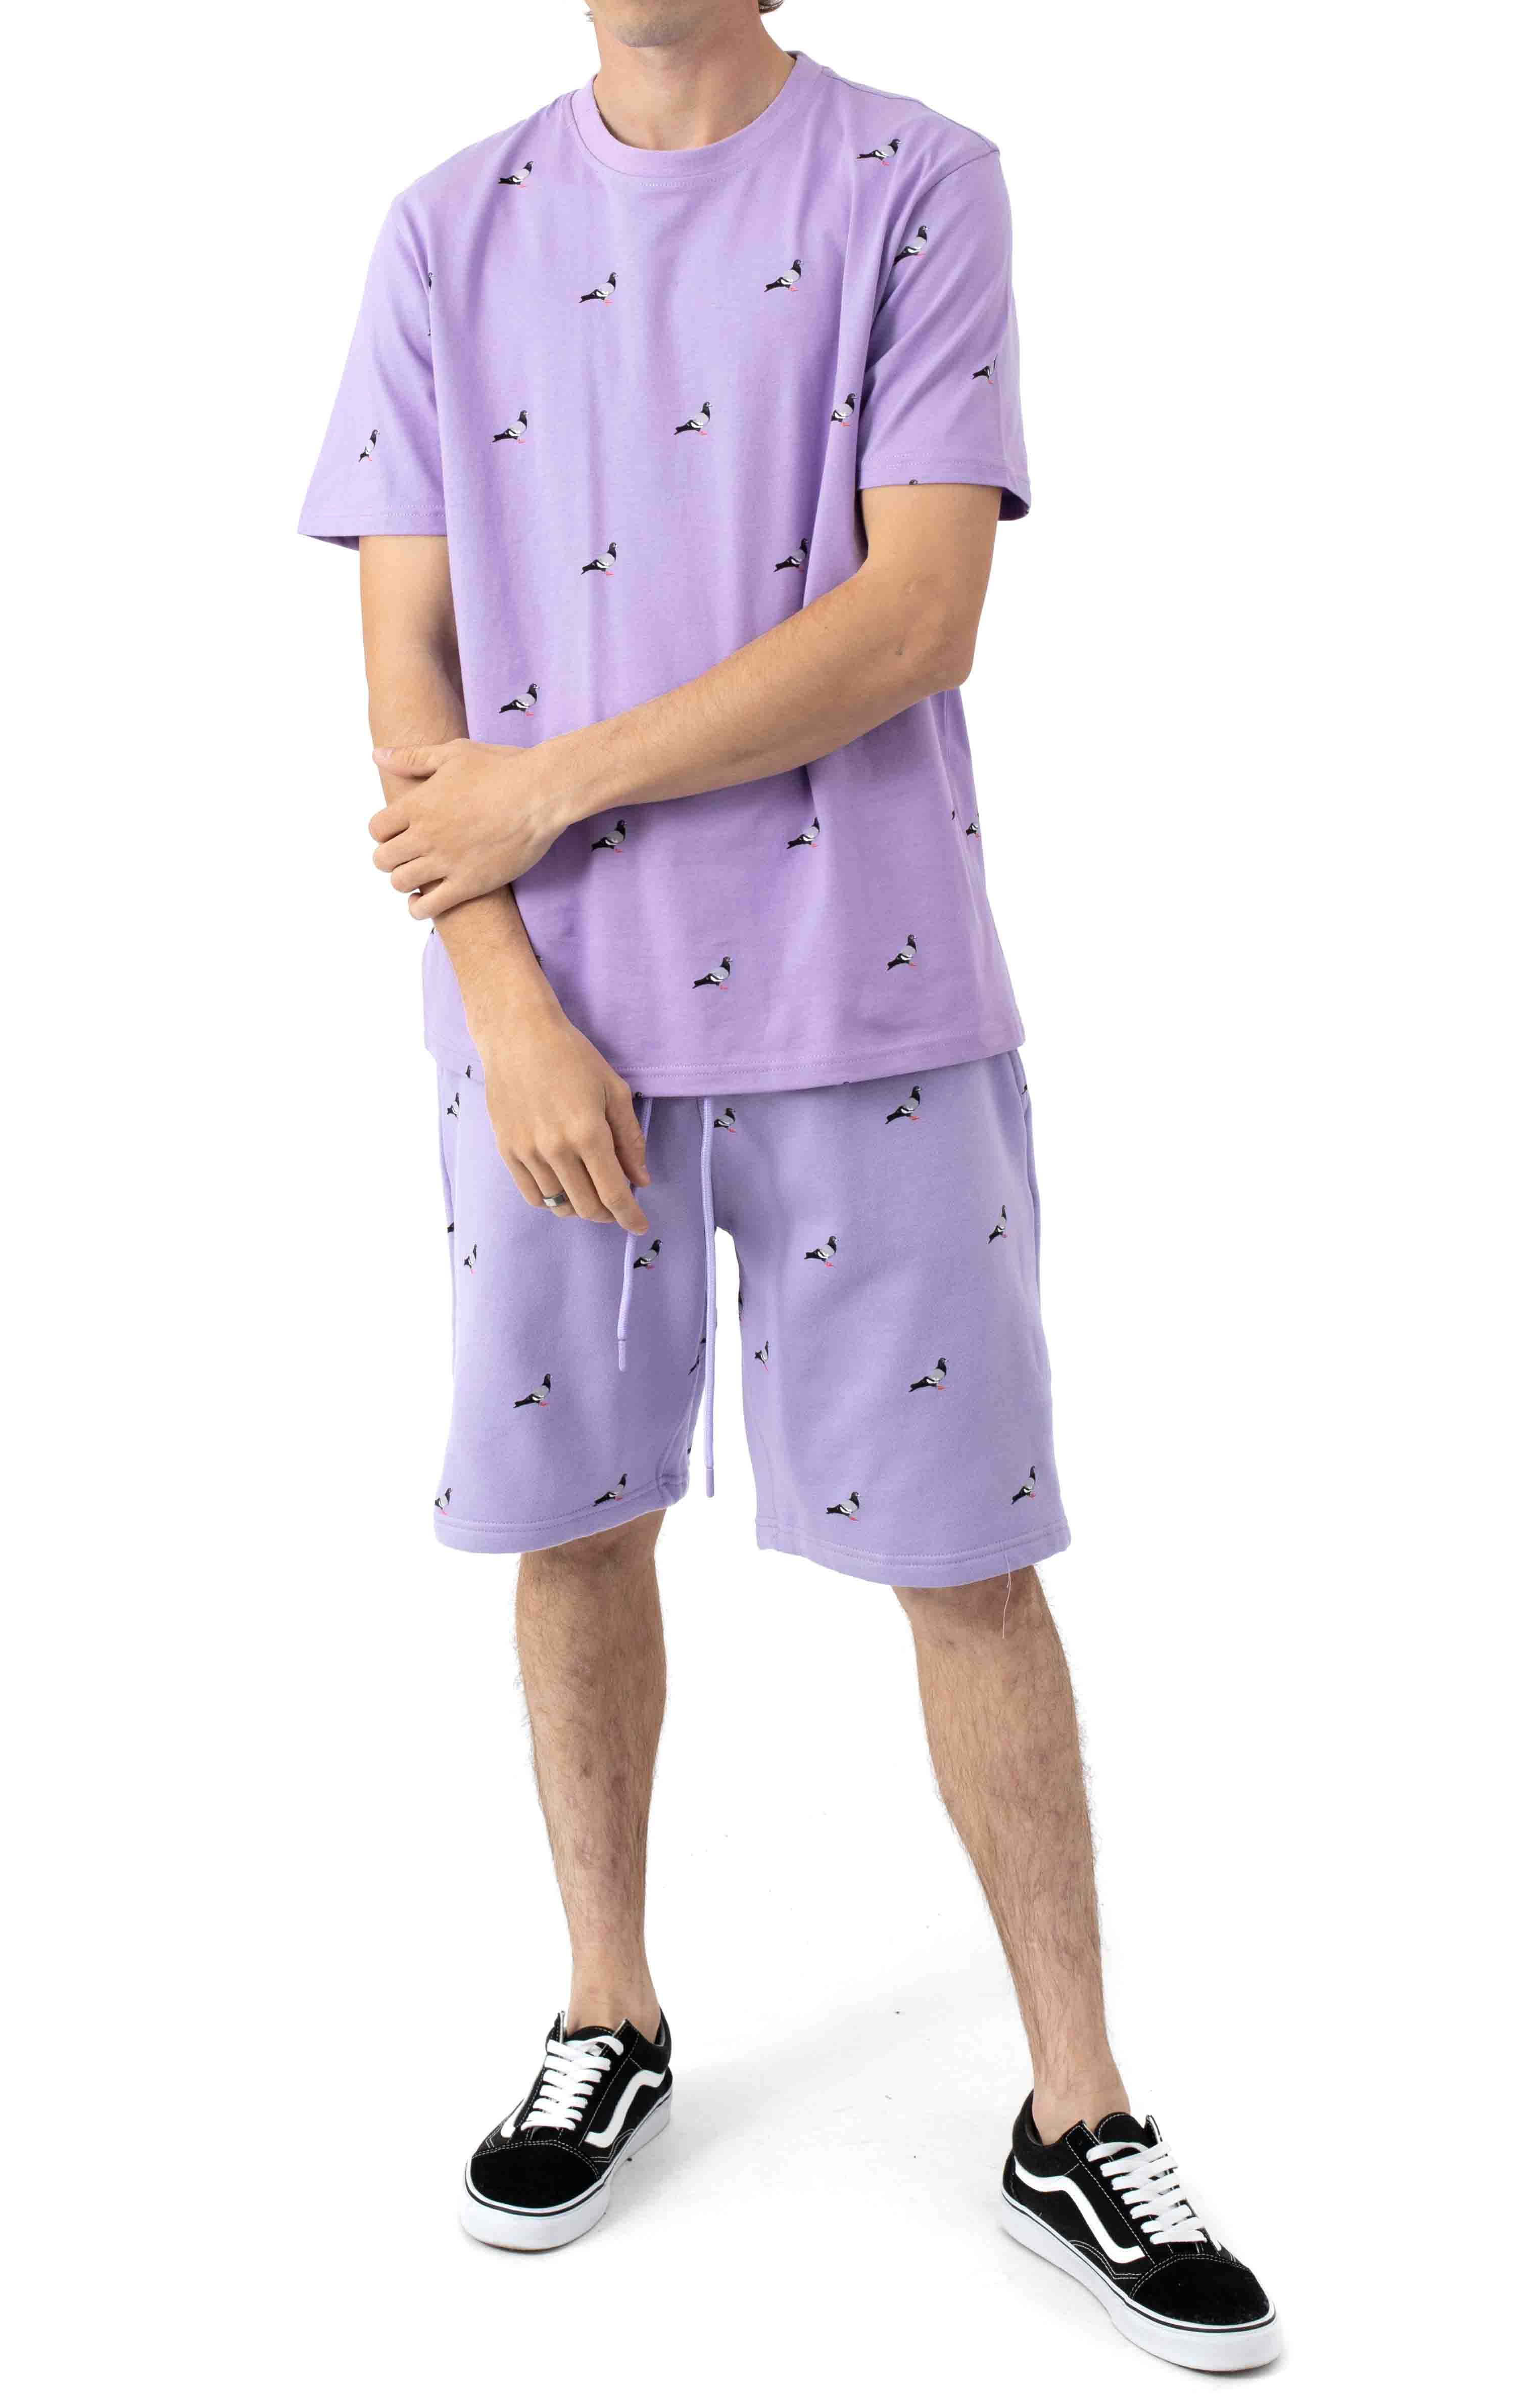 All Over Pigeon Sweatshorts - Lilac 4